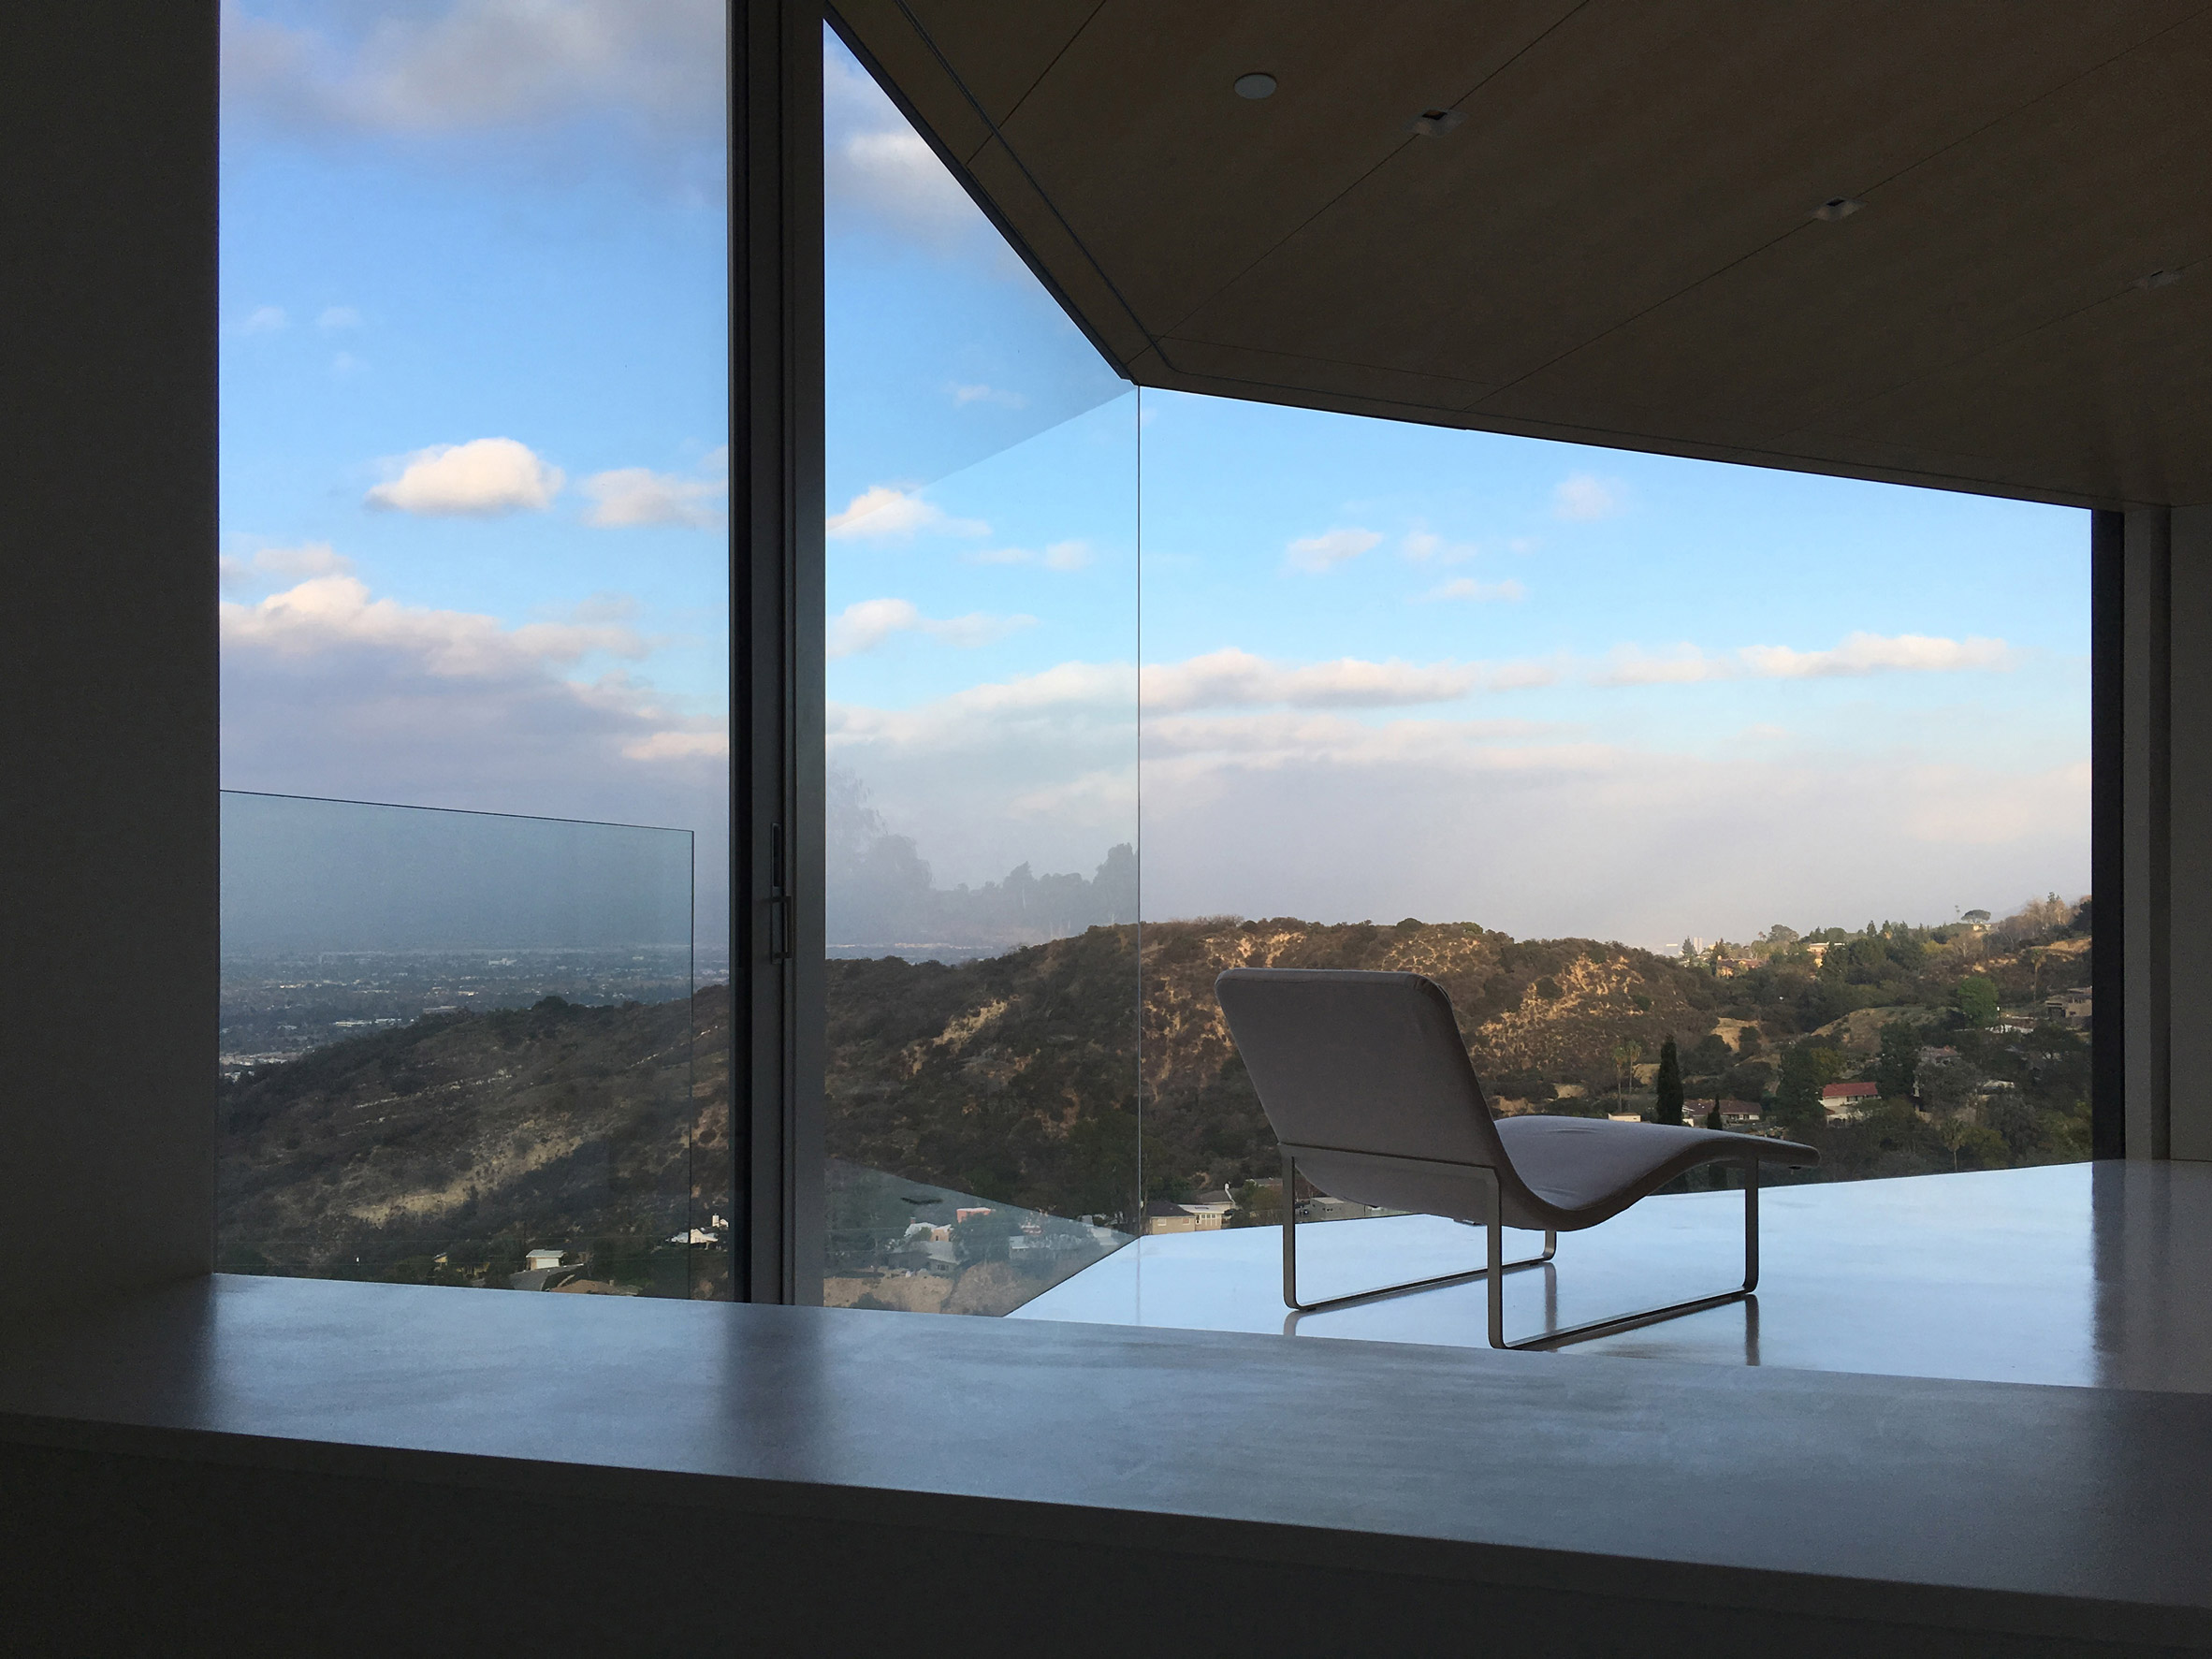 Mullholland Drive by 1m Project